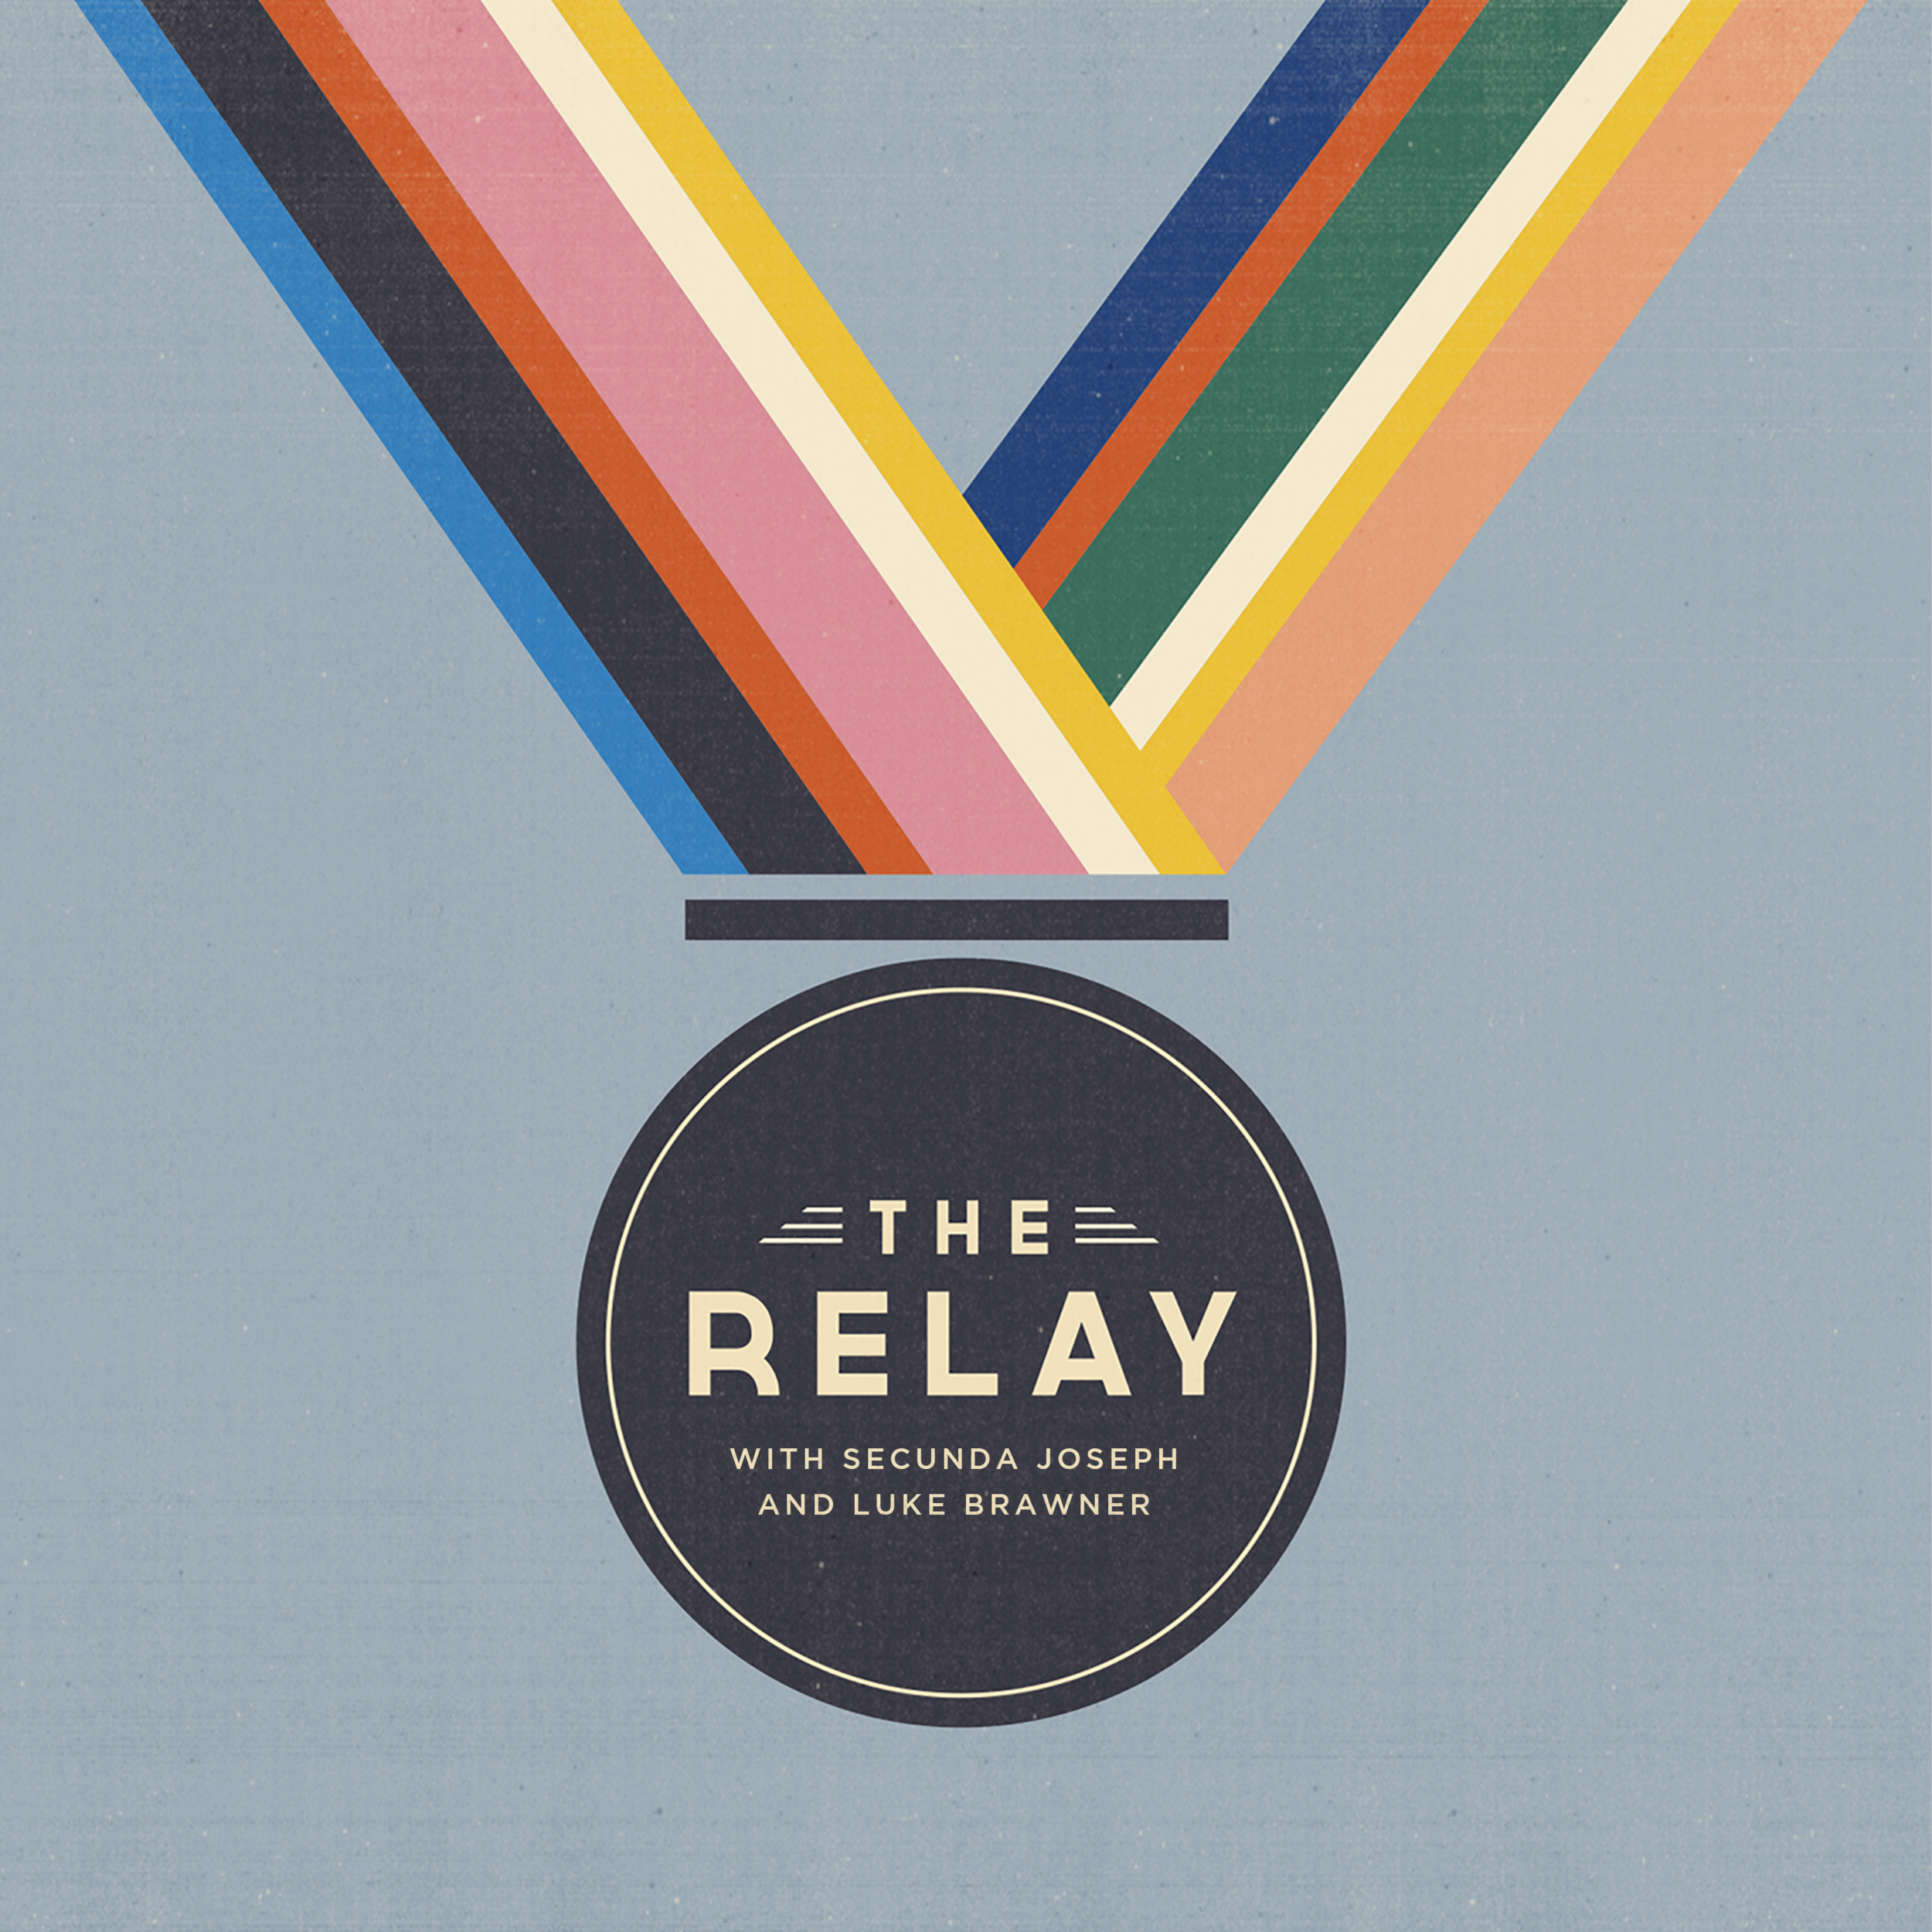 The Relay - A podcast exploring what it means to build transformational, justice-driven communities and relationships today.Hosted by Secunda Joseph and Luke Brawner, in partnership with Project Curate.Hear the latest episode below!